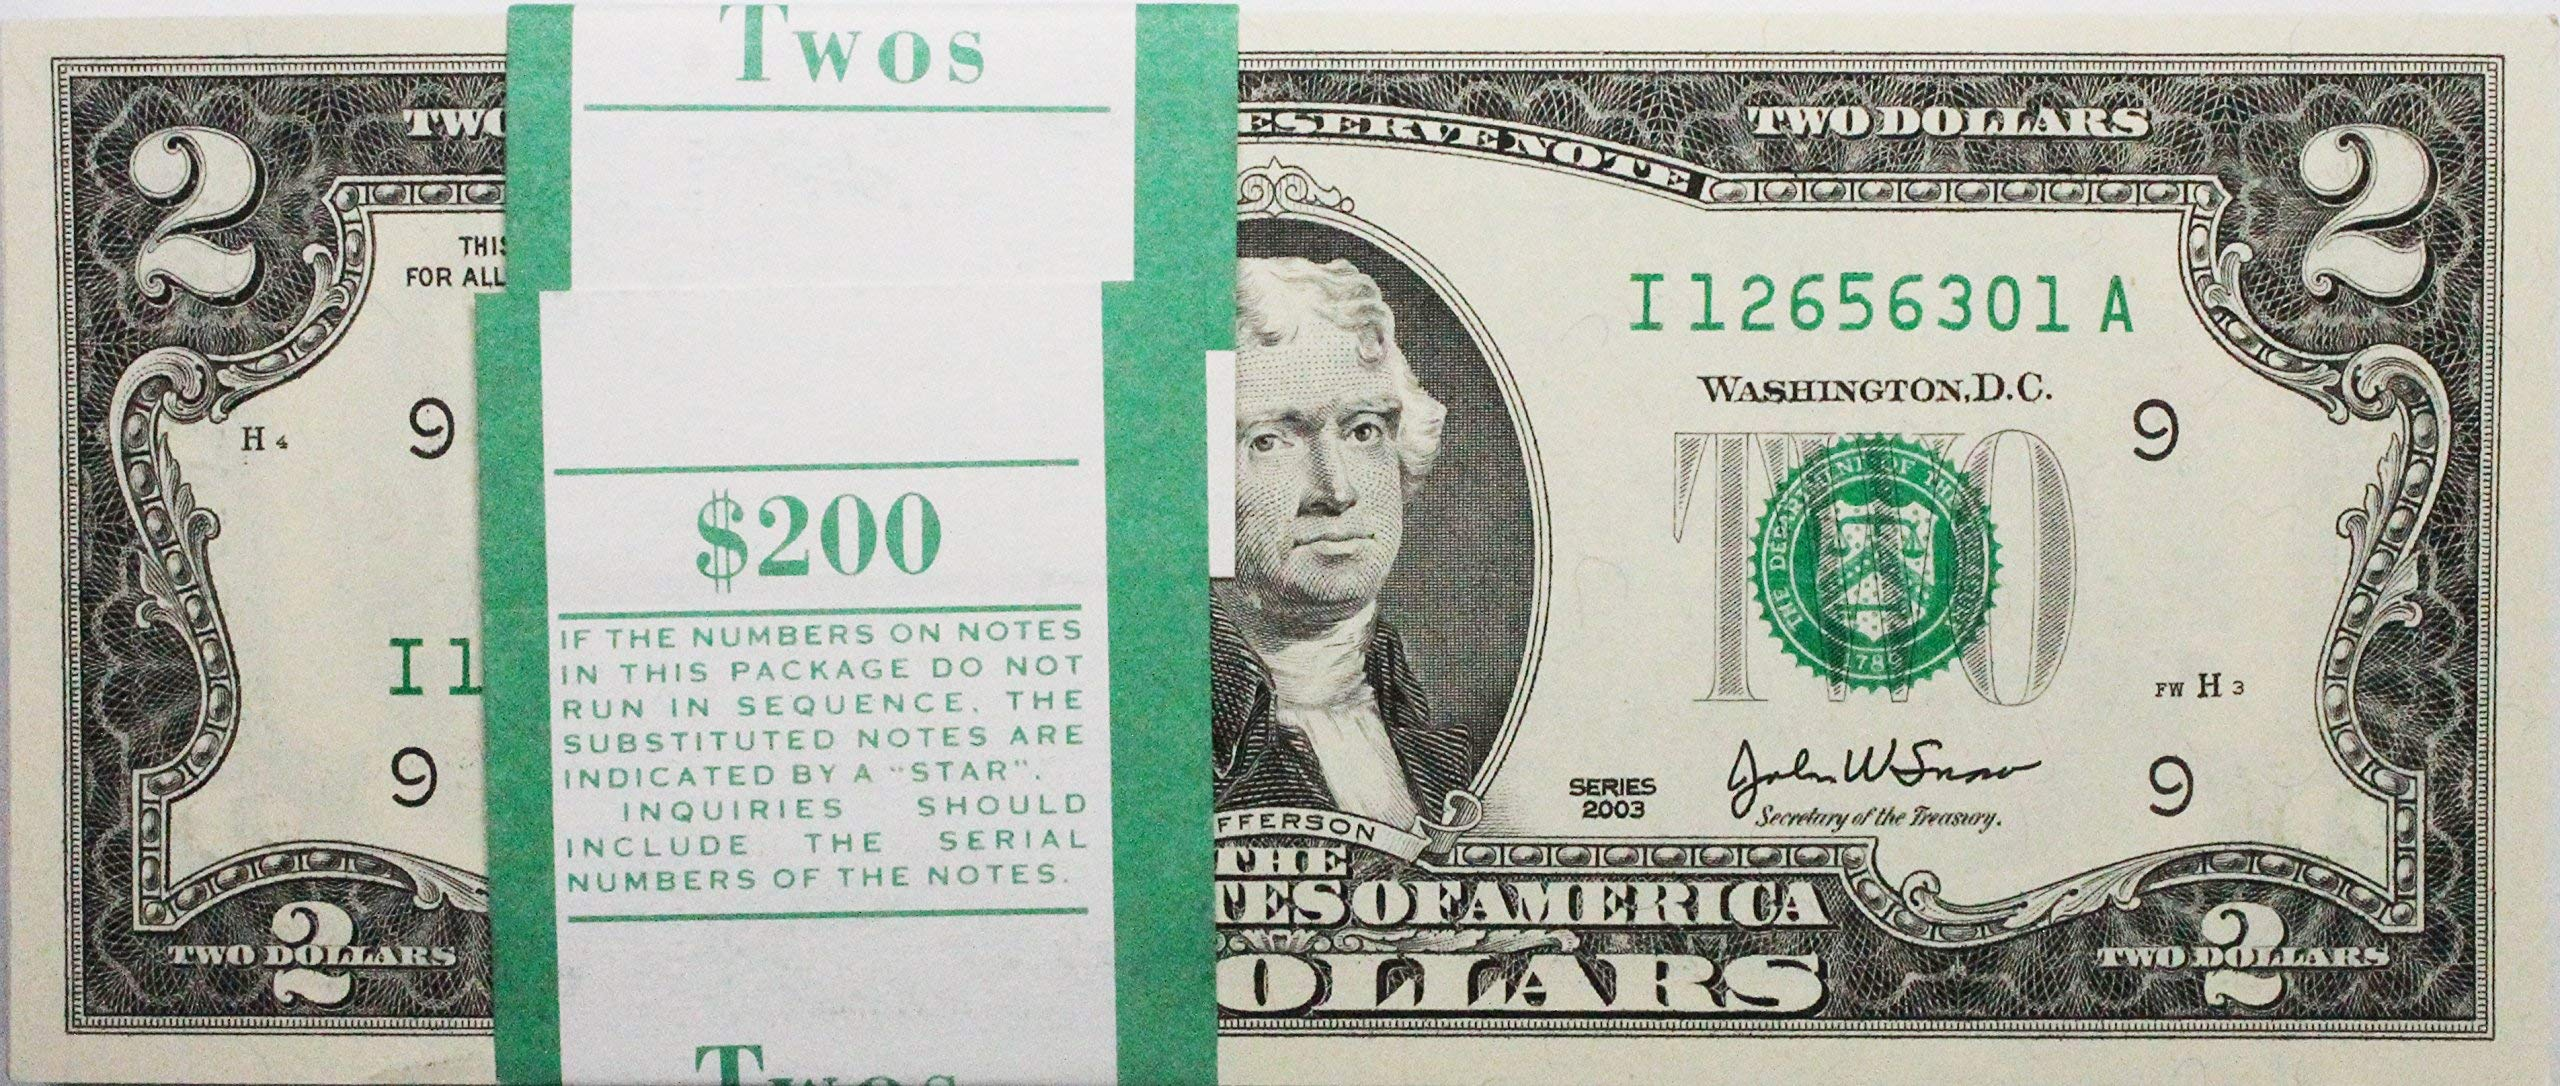 Two Dollar Bills - Stack of 100 Real Uncirculated and Rare $2 Bills (Mint Condition)